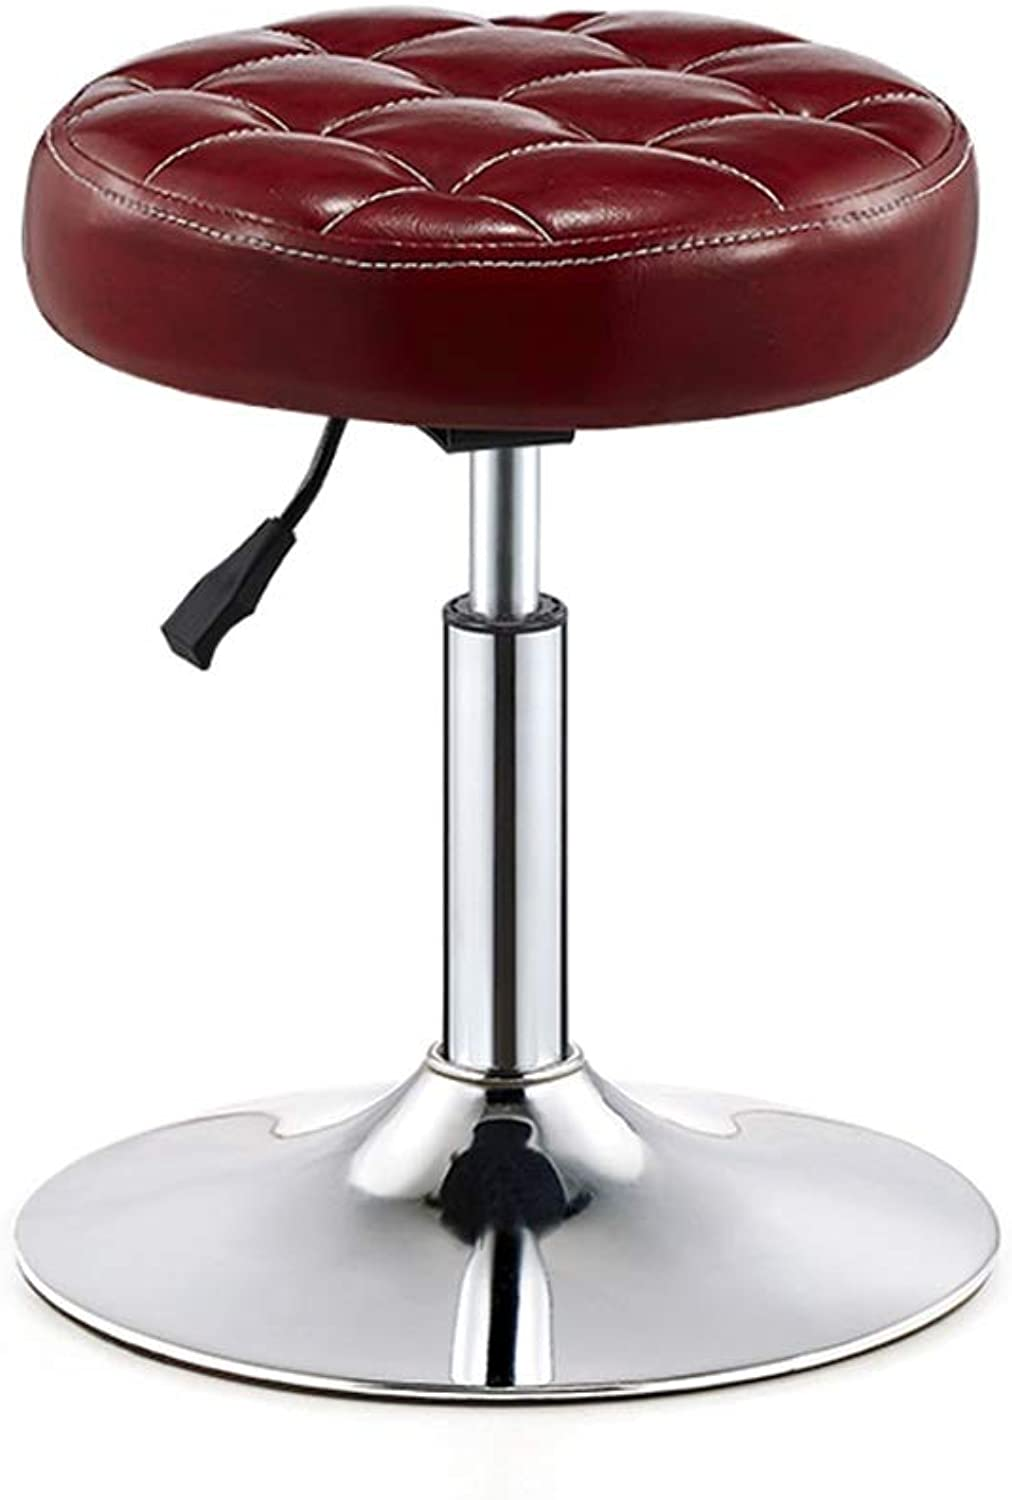 WQZB-Swivel Chair Barstools Chair Round PU Seat Adjustable Swivel Gas Lift, Height 40-55cm for Kitchen Breakfast Bar Stool Chromed Plate Base Max. Load 150 kg in Dark Red